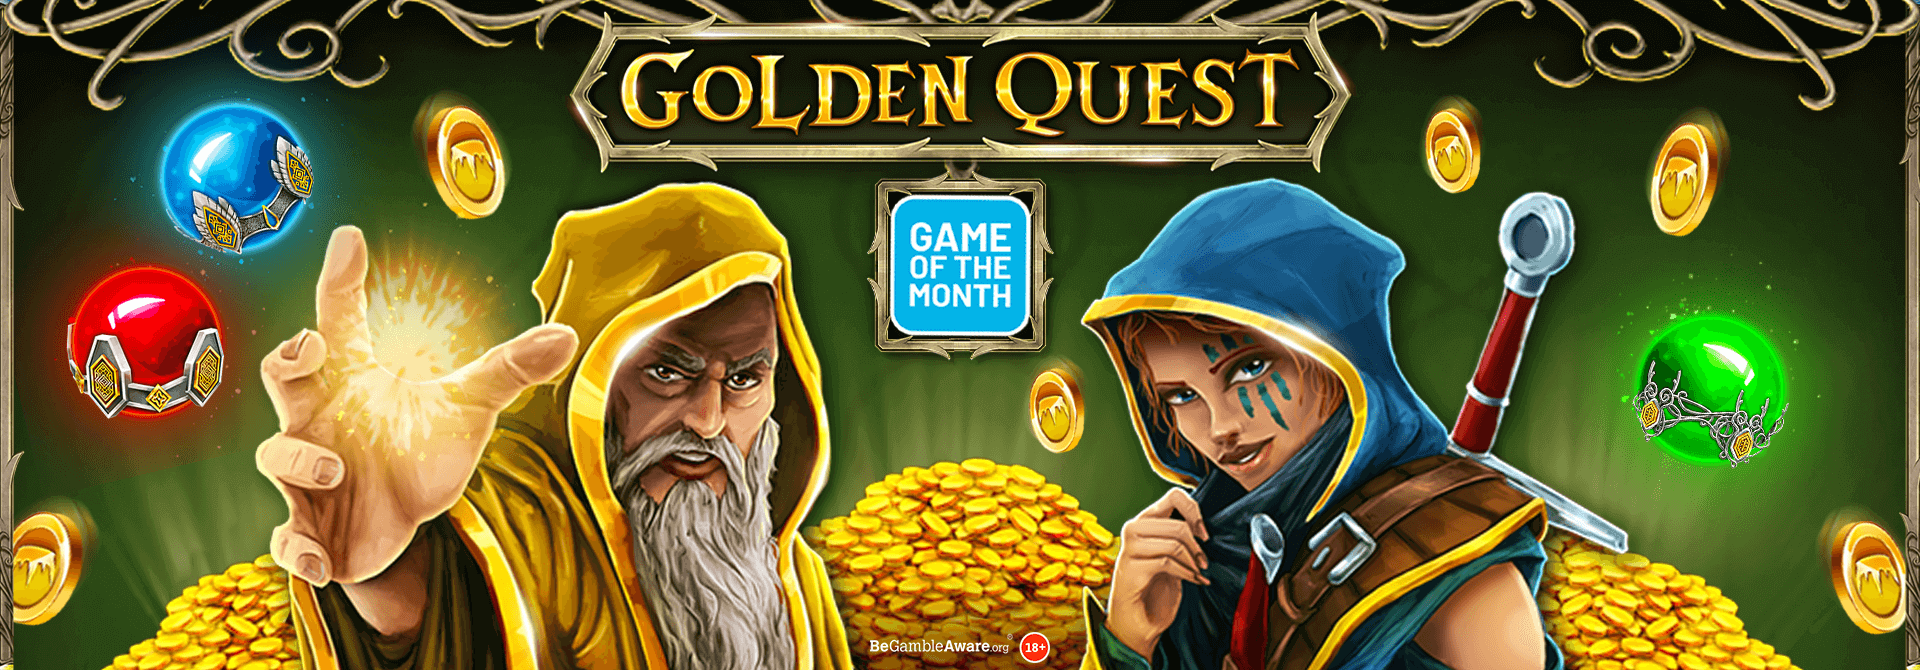 Will you discover glittering treasure with Golden Quest?